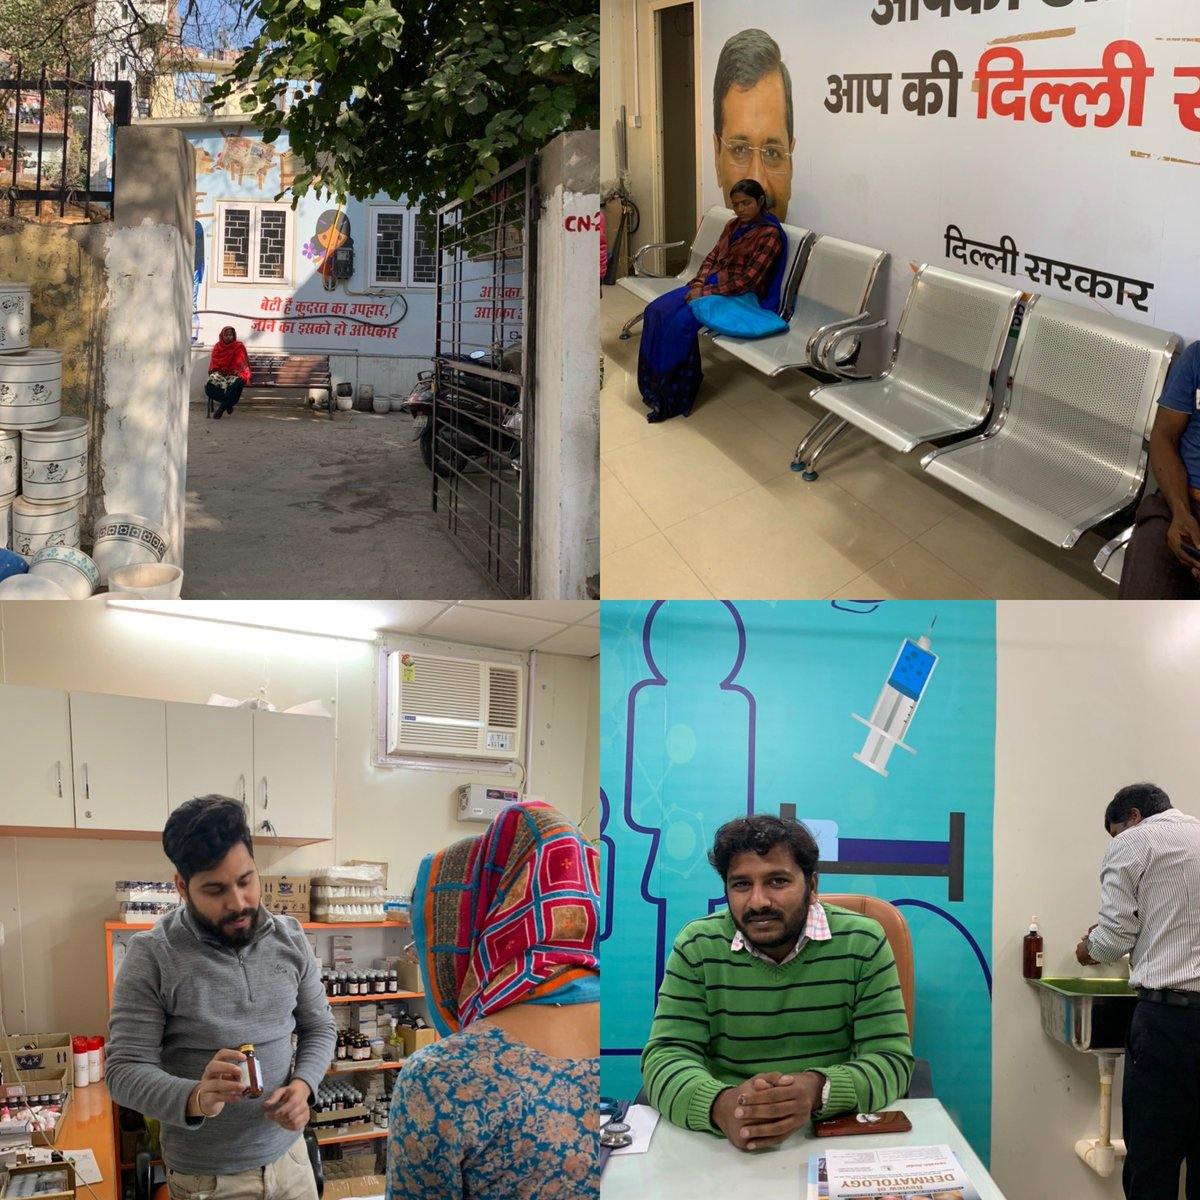 Just visited a Mohalla clinic in saket, Delhi which was most impressive. Neat & clean n very efficient. I spoke to the people who said it was a boon for the Mohalla. Need to replicate this model across the country. @ArvindKejriwal @AamAadmiParty